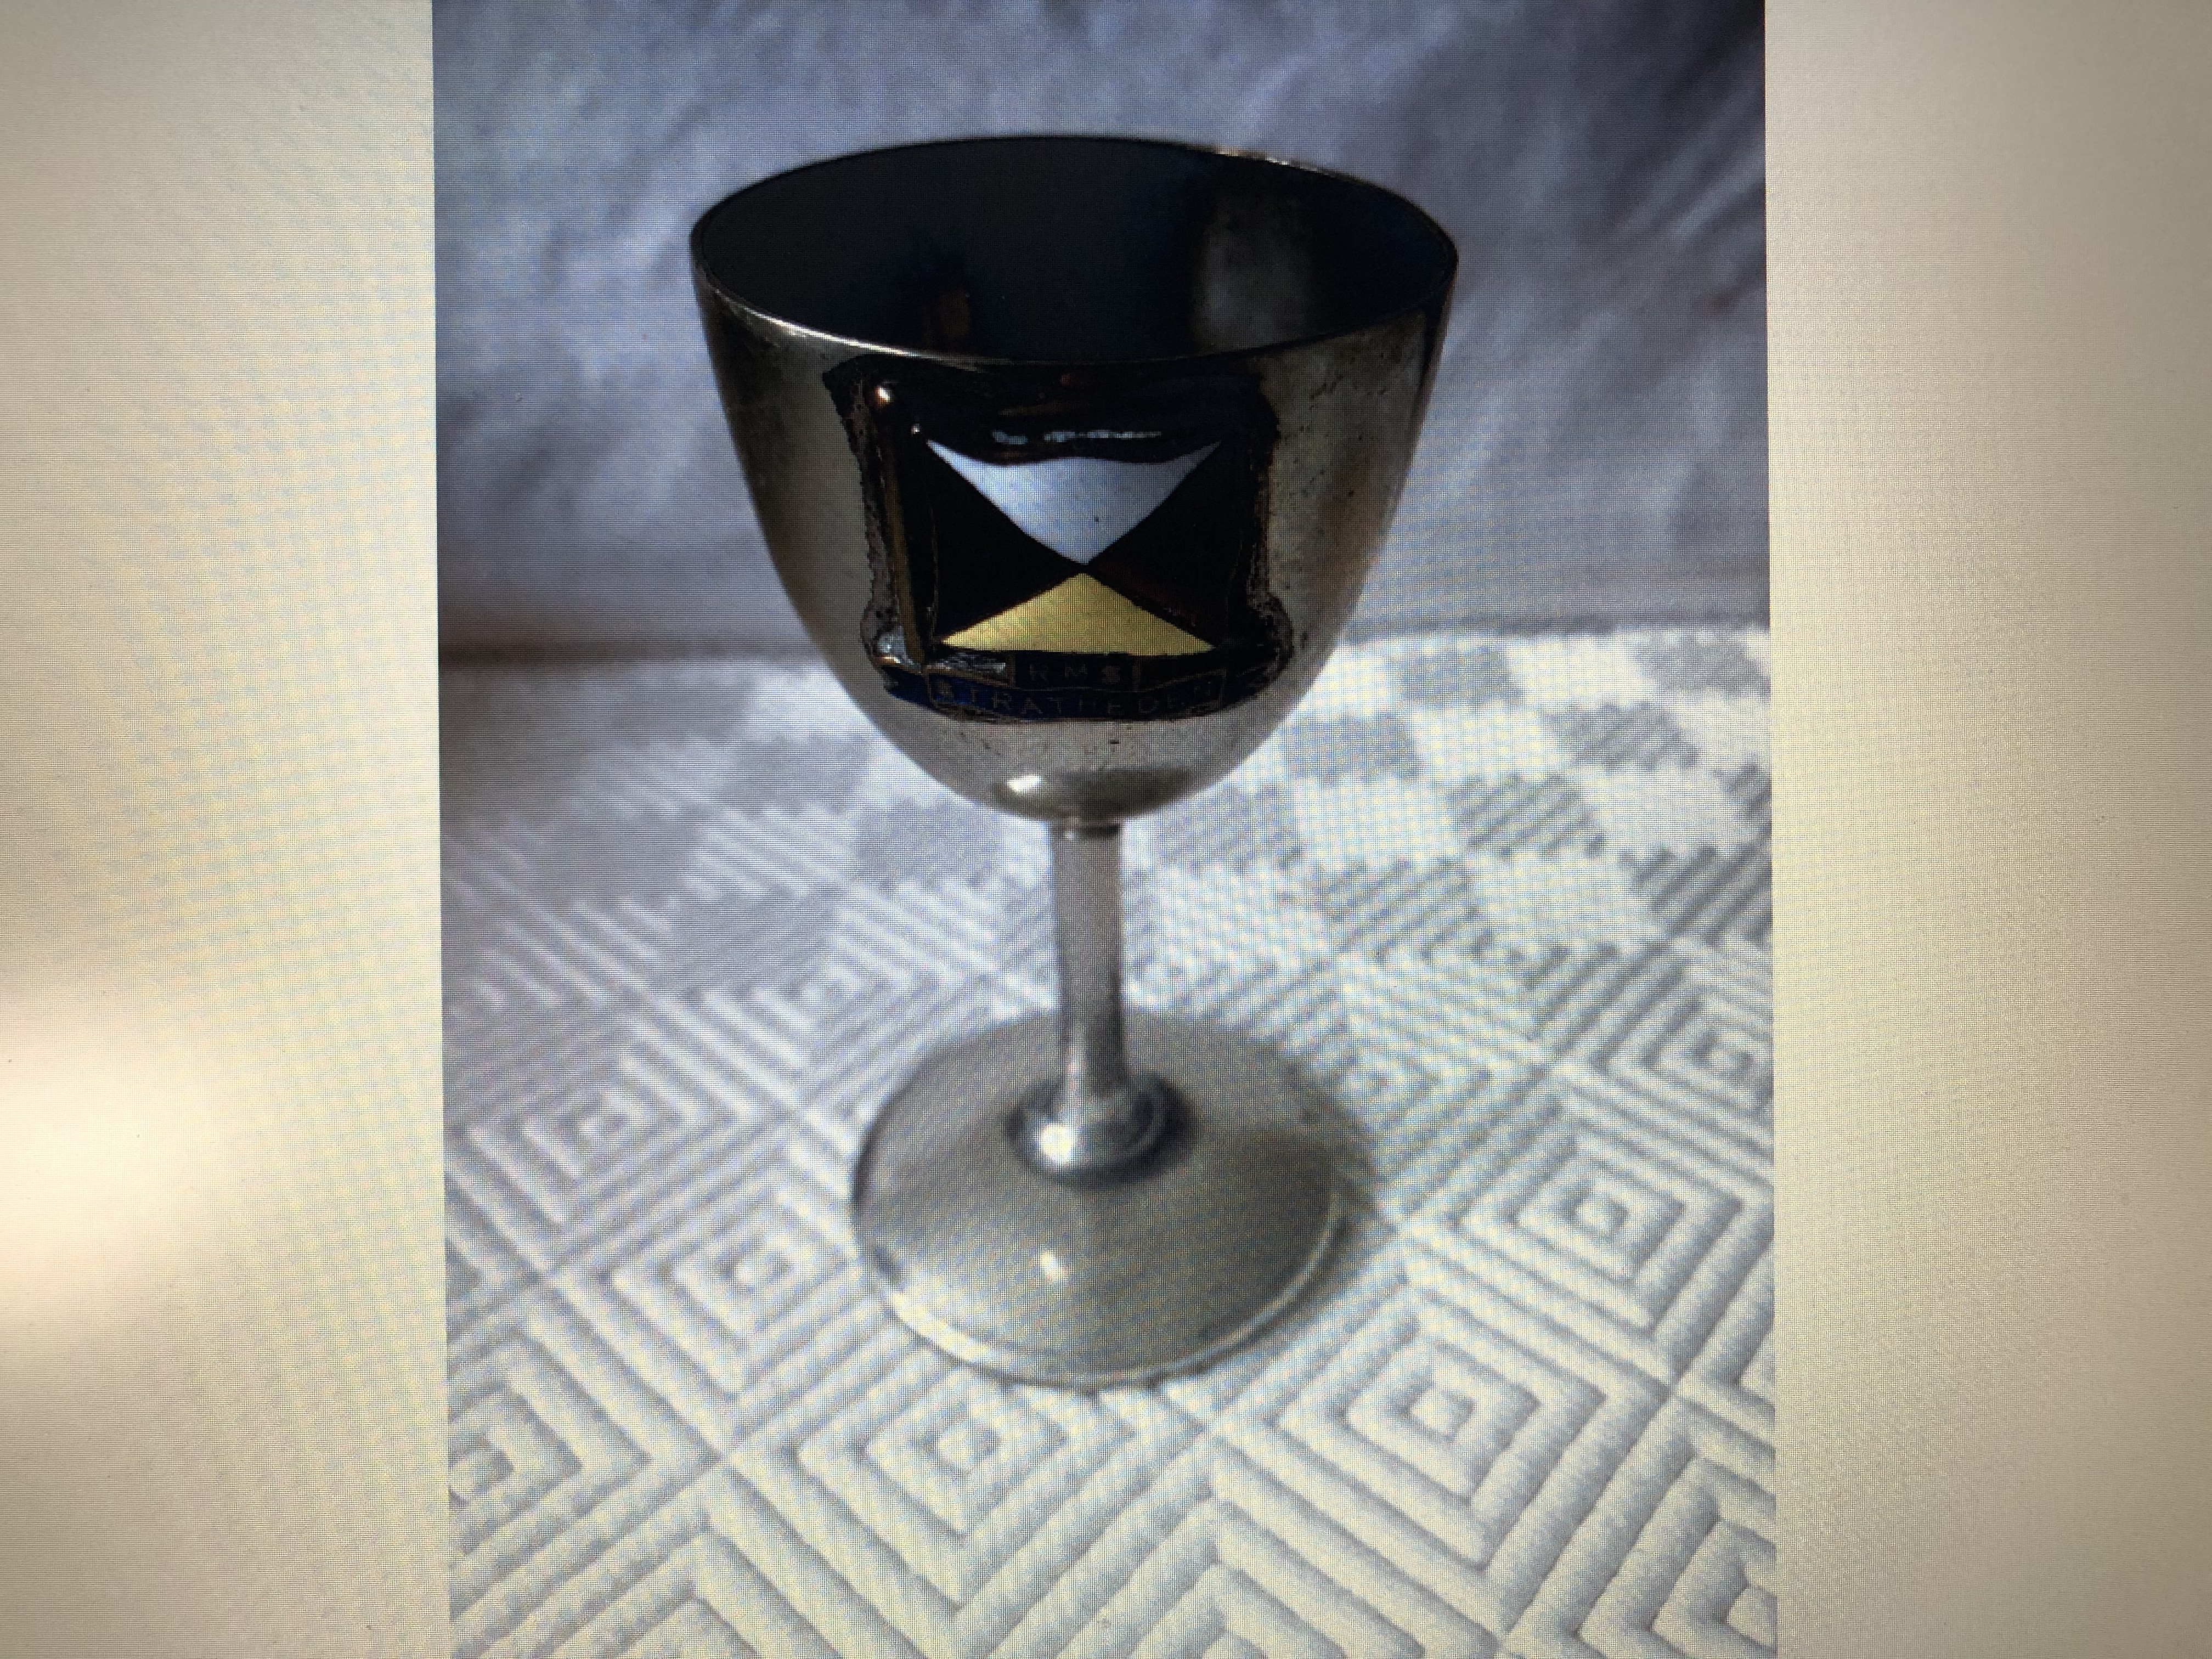 EGGCUP SOUVENIR FROM THE P&O LINE VESSEL THE RMS STRATHEDEN